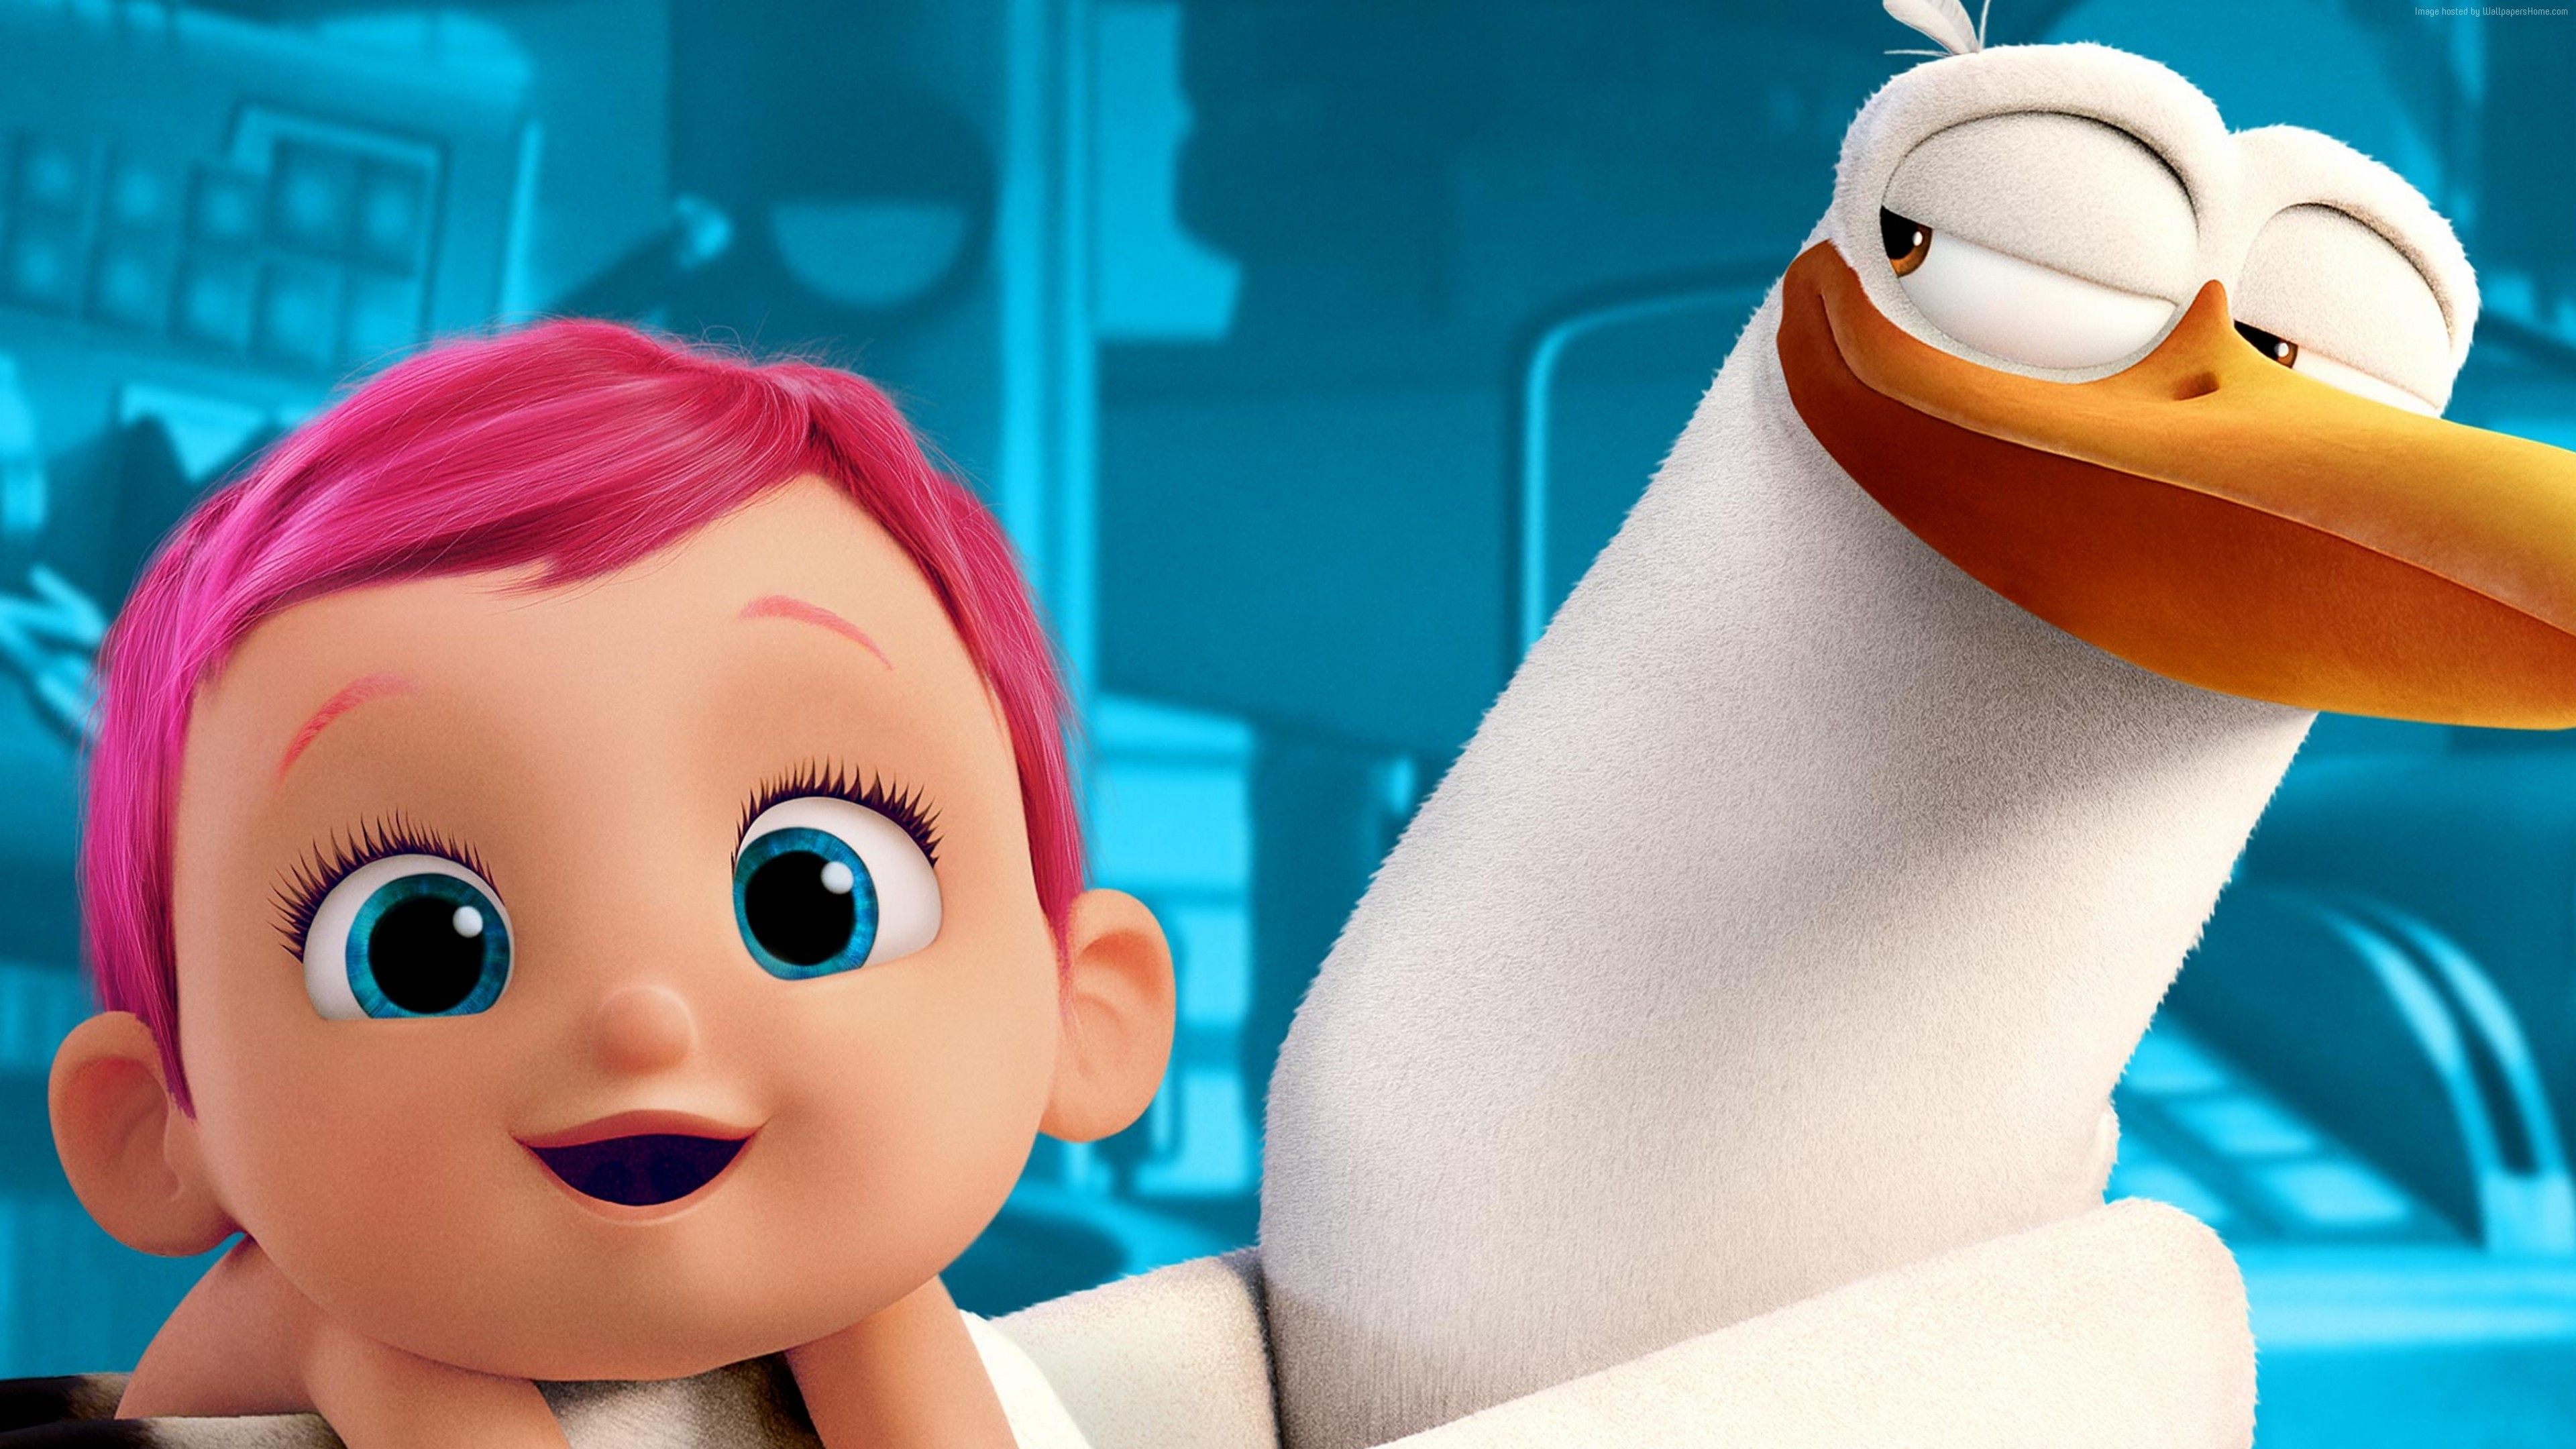 Animated Movies About Babies 3840x2160 Download Hd Wallpaper Wallpapertip